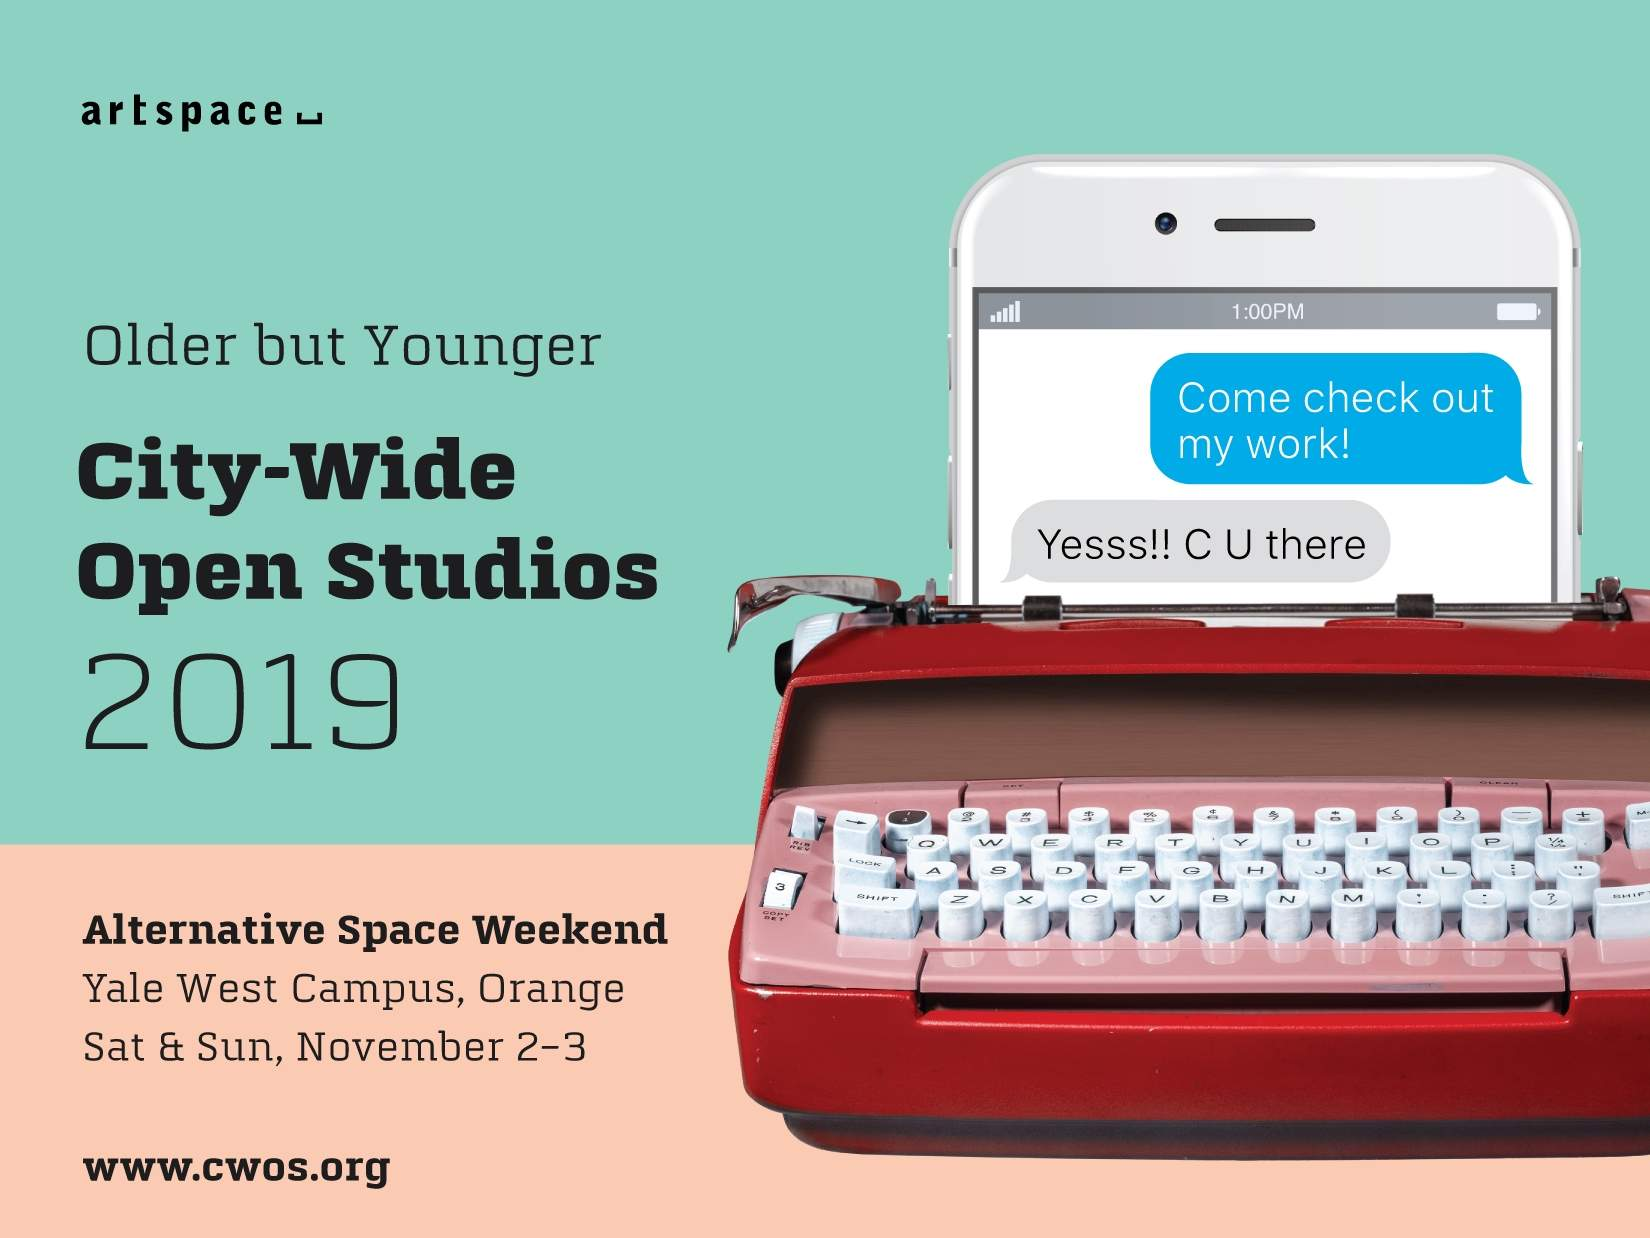 22nd annual City-Wide Open Studios Alternative Space Weekend, November 2-3, 12-6pm both days, at the Yale West Campus in Orange